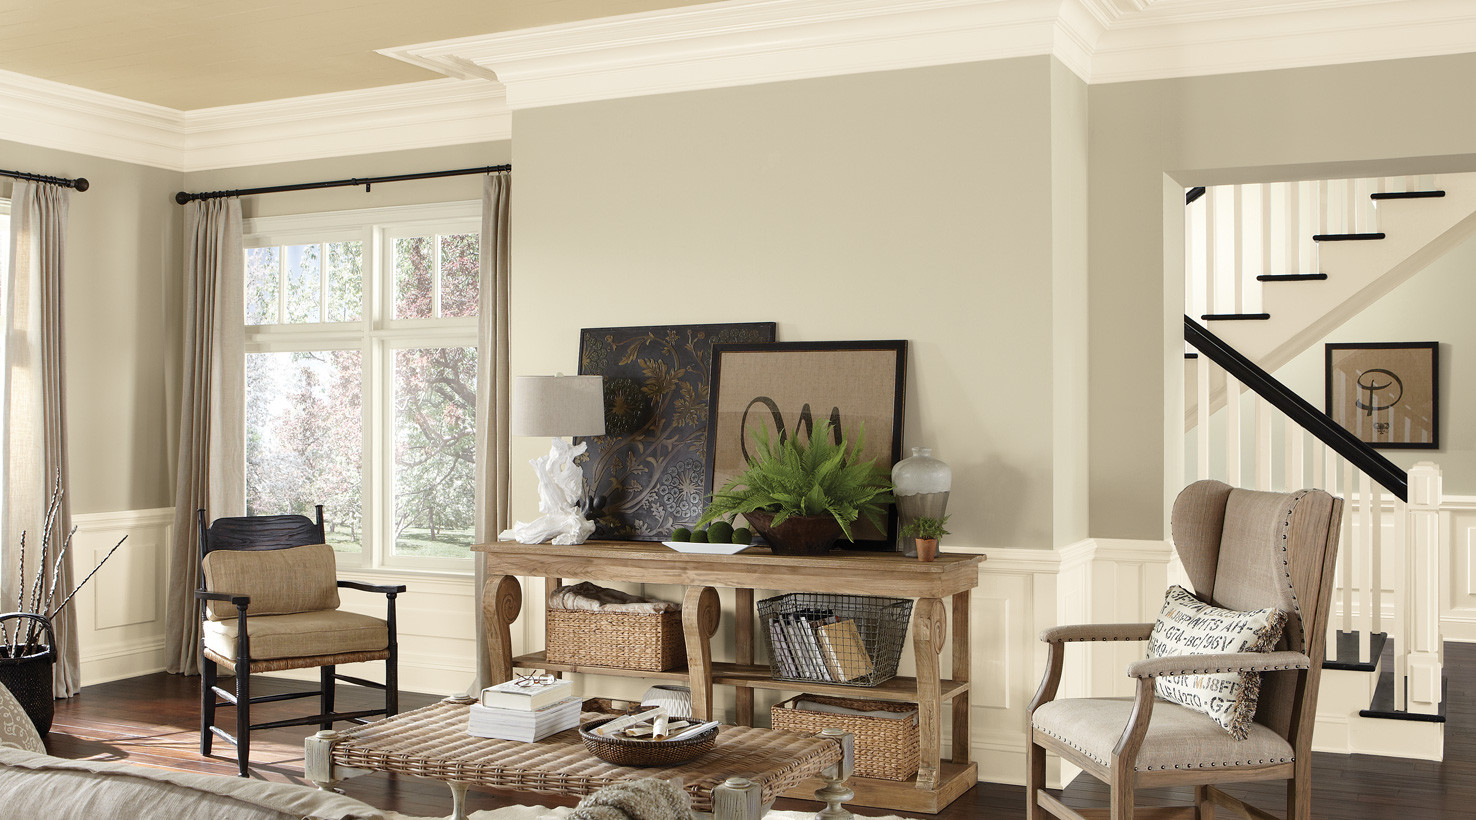 Best ideas about Living Room Paint Ideas . Save or Pin Living Room Paint Color Ideas Now.